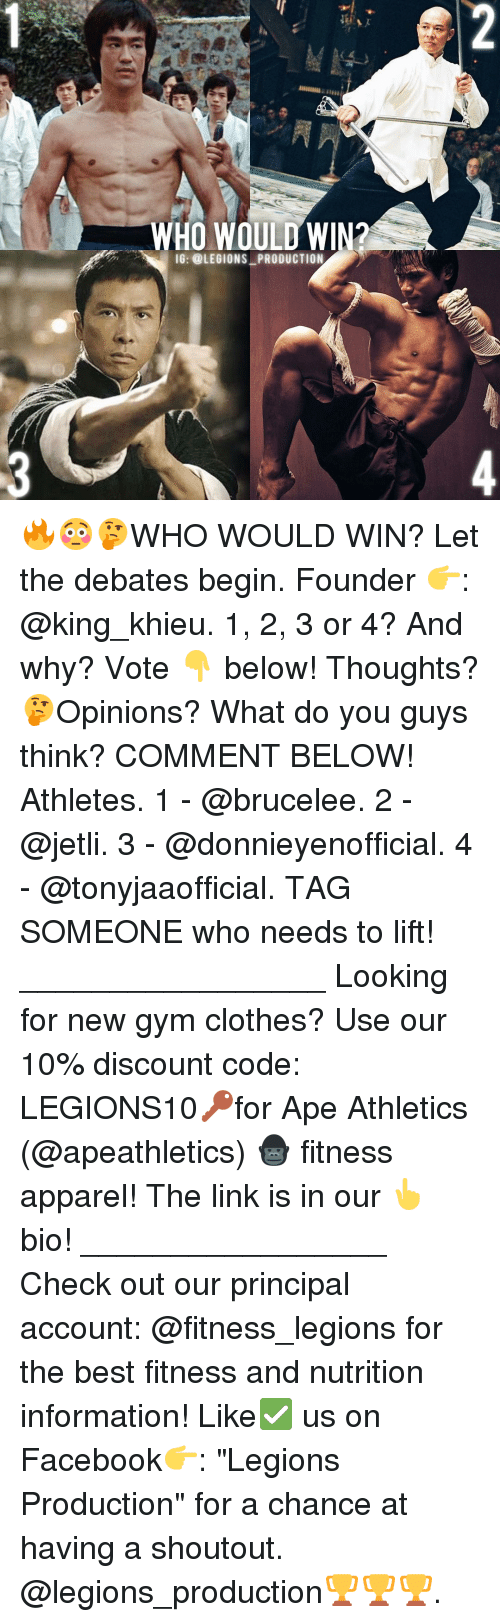 "cloths: WHO WOULD WIN?  IG: @LEGIONS PRODUCTION 🔥😳🤔WHO WOULD WIN? Let the debates begin. Founder 👉: @king_khieu. 1, 2, 3 or 4? And why? Vote 👇 below! Thoughts? 🤔Opinions? What do you guys think? COMMENT BELOW! Athletes. 1 - @brucelee. 2 - @jetli. 3 - @donnieyenofficial. 4 - @tonyjaaofficial. TAG SOMEONE who needs to lift! _________________ Looking for new gym clothes? Use our 10% discount code: LEGIONS10🔑for Ape Athletics (@apeathletics) 🦍 fitness apparel! The link is in our 👆 bio! _________________ Check out our principal account: @fitness_legions for the best fitness and nutrition information! Like✅ us on Facebook👉: ""Legions Production"" for a chance at having a shoutout. @legions_production🏆🏆🏆."